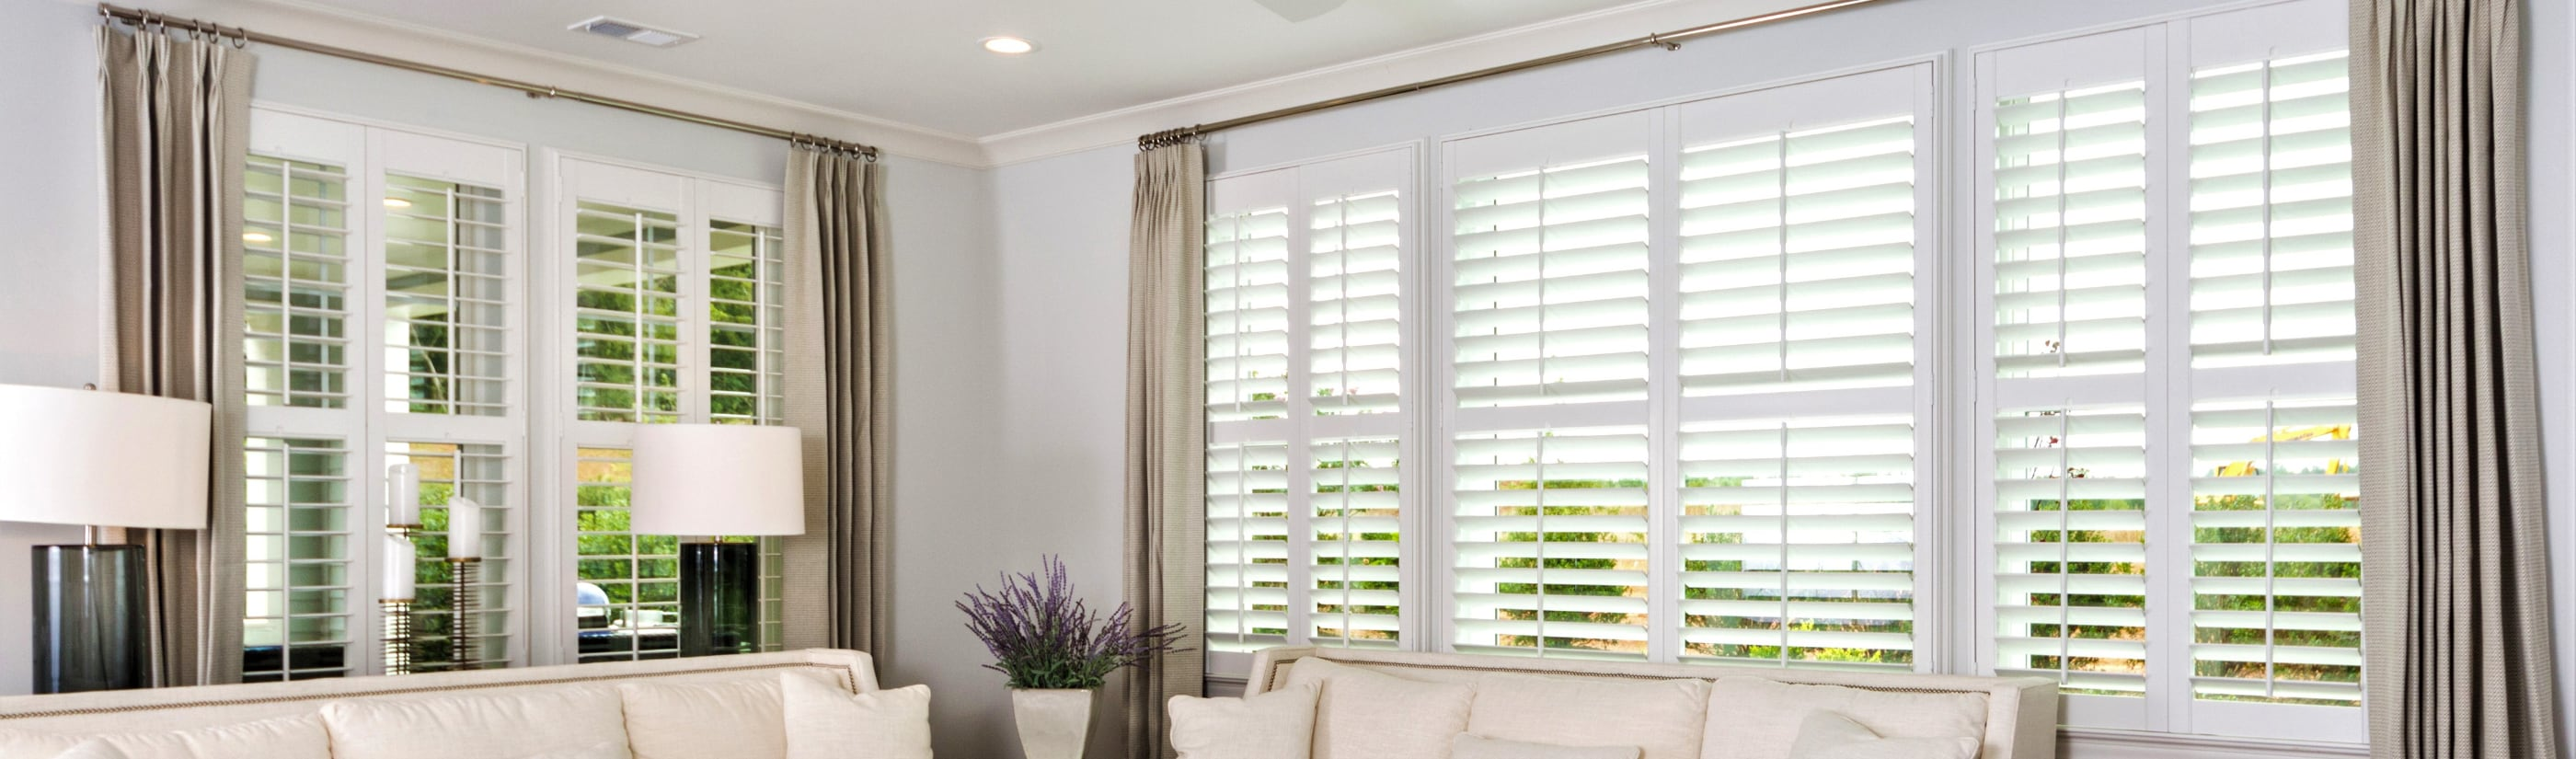 Polywood Shutters Paints In Cleveland